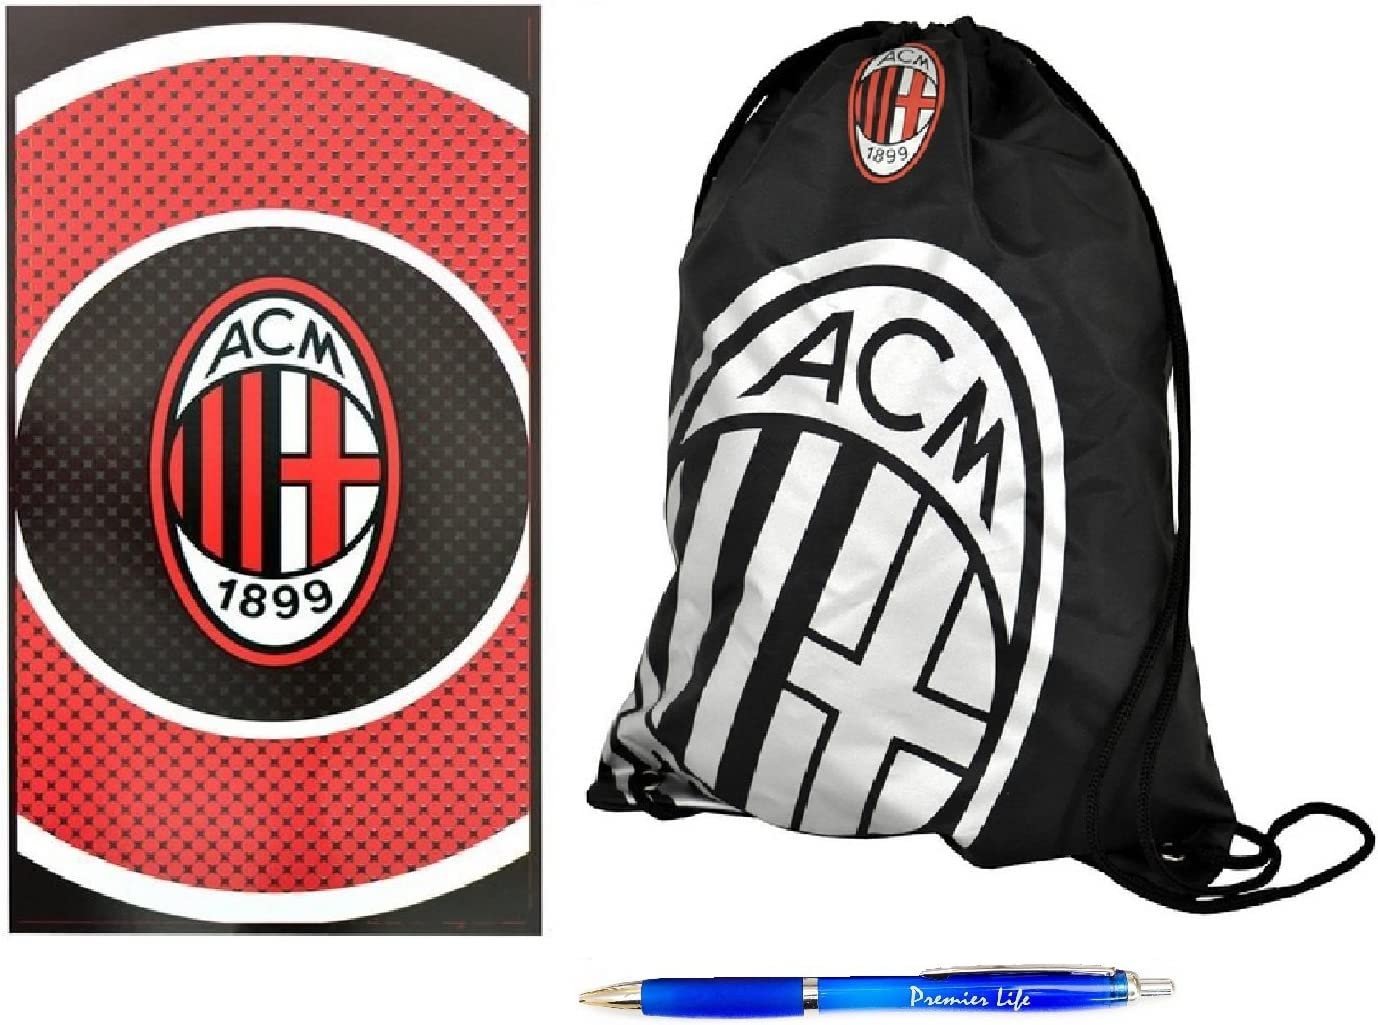 Amazon Com Premier Life Store Back To School With Ac Milan Fc Gym Bag And Towel Sports Outdoors